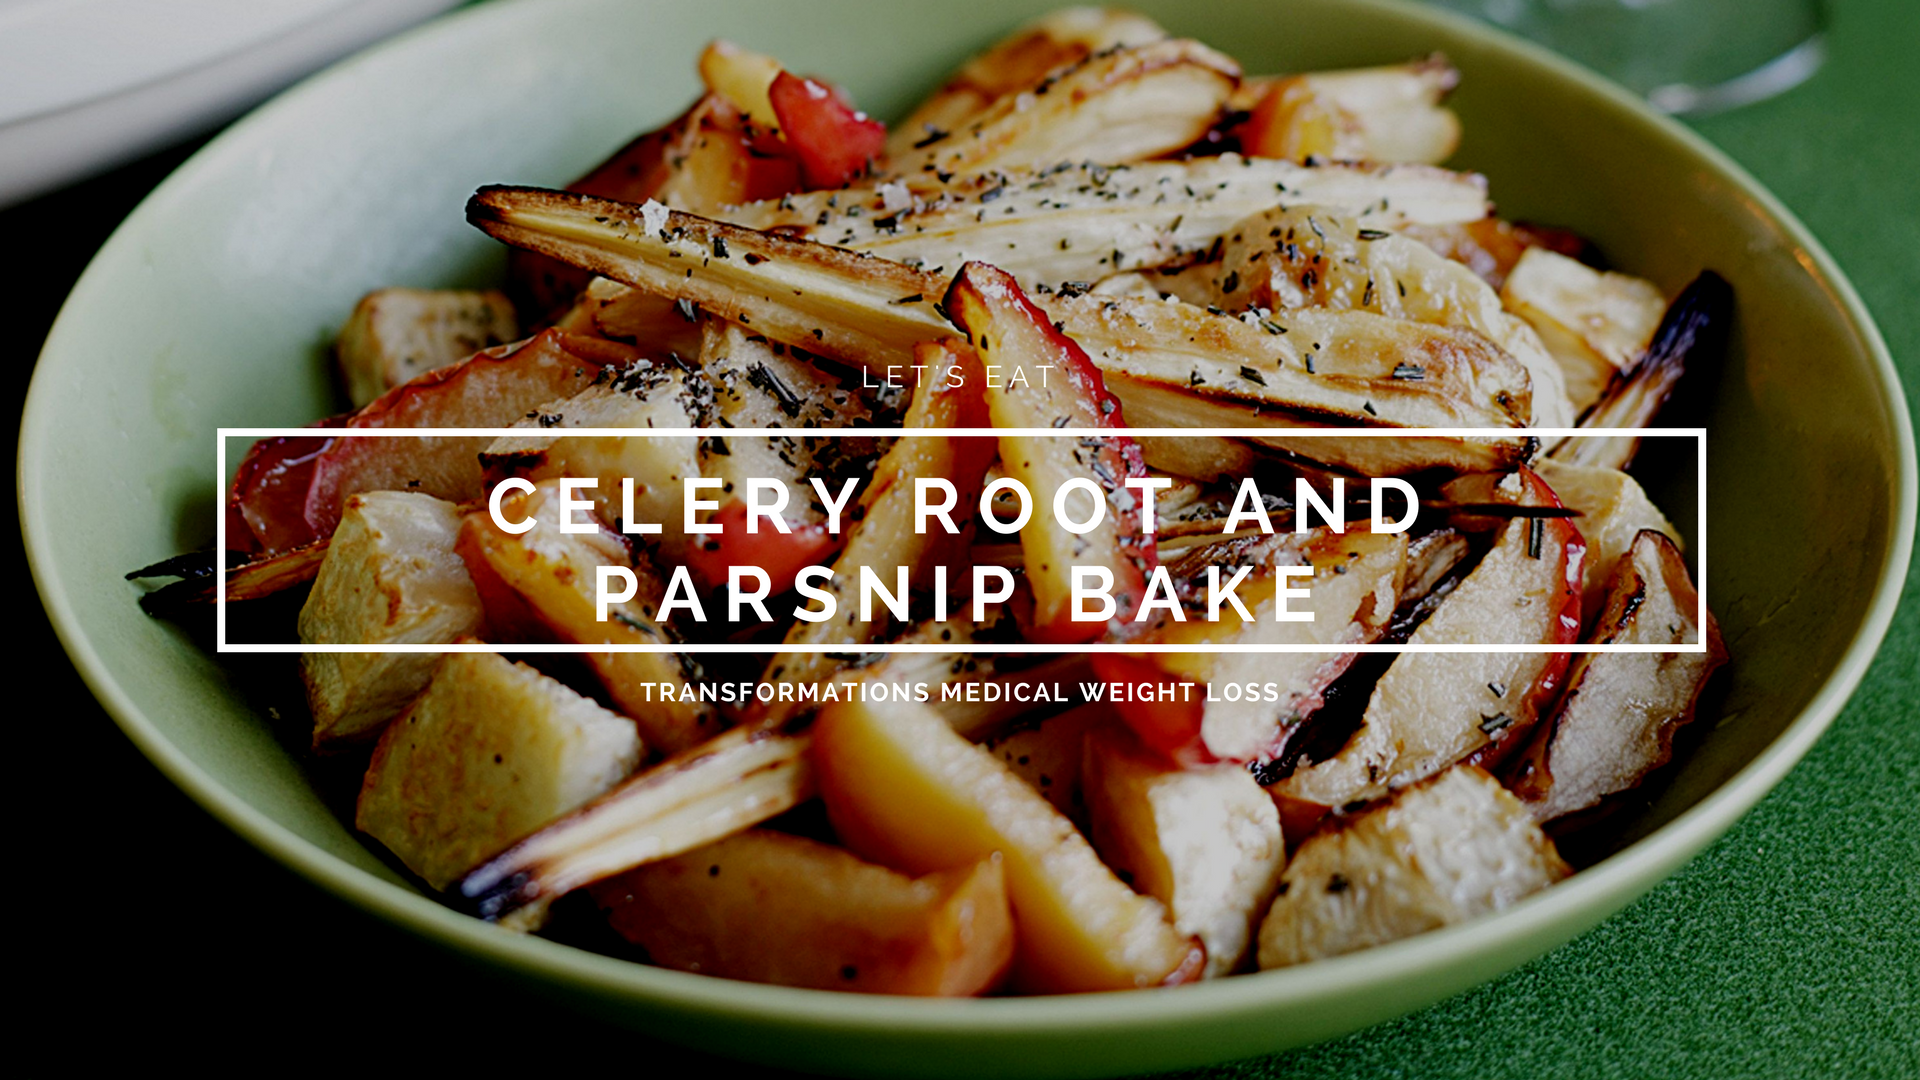 Celery Root and Parsnip Bake